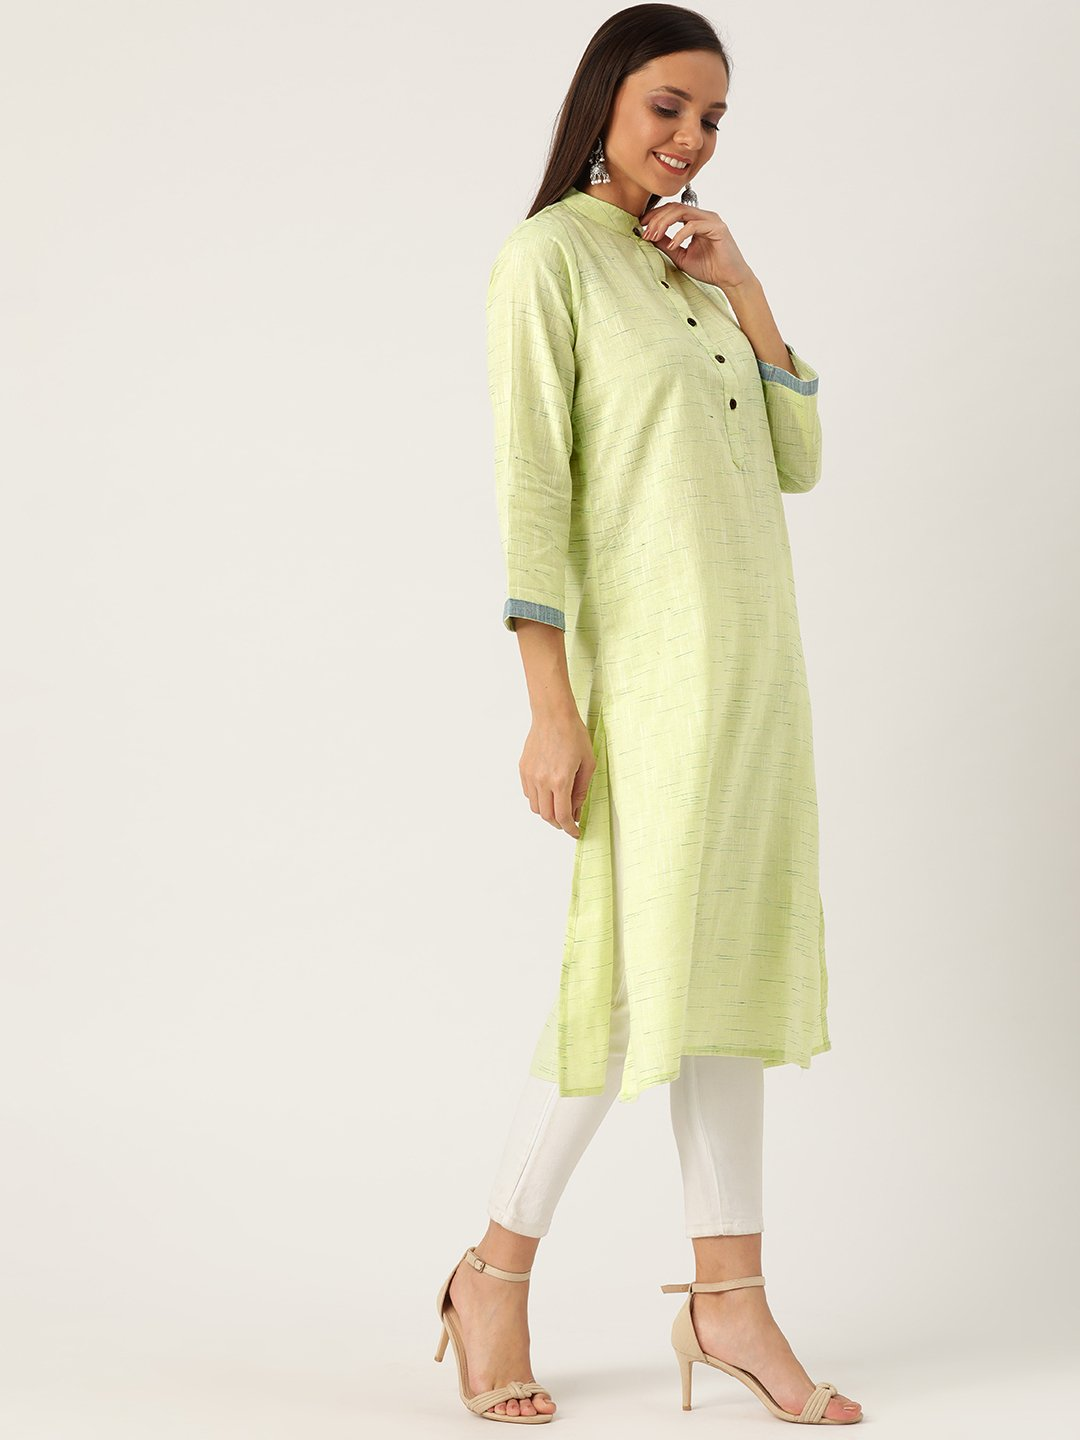 Handloom cotton kurta in green